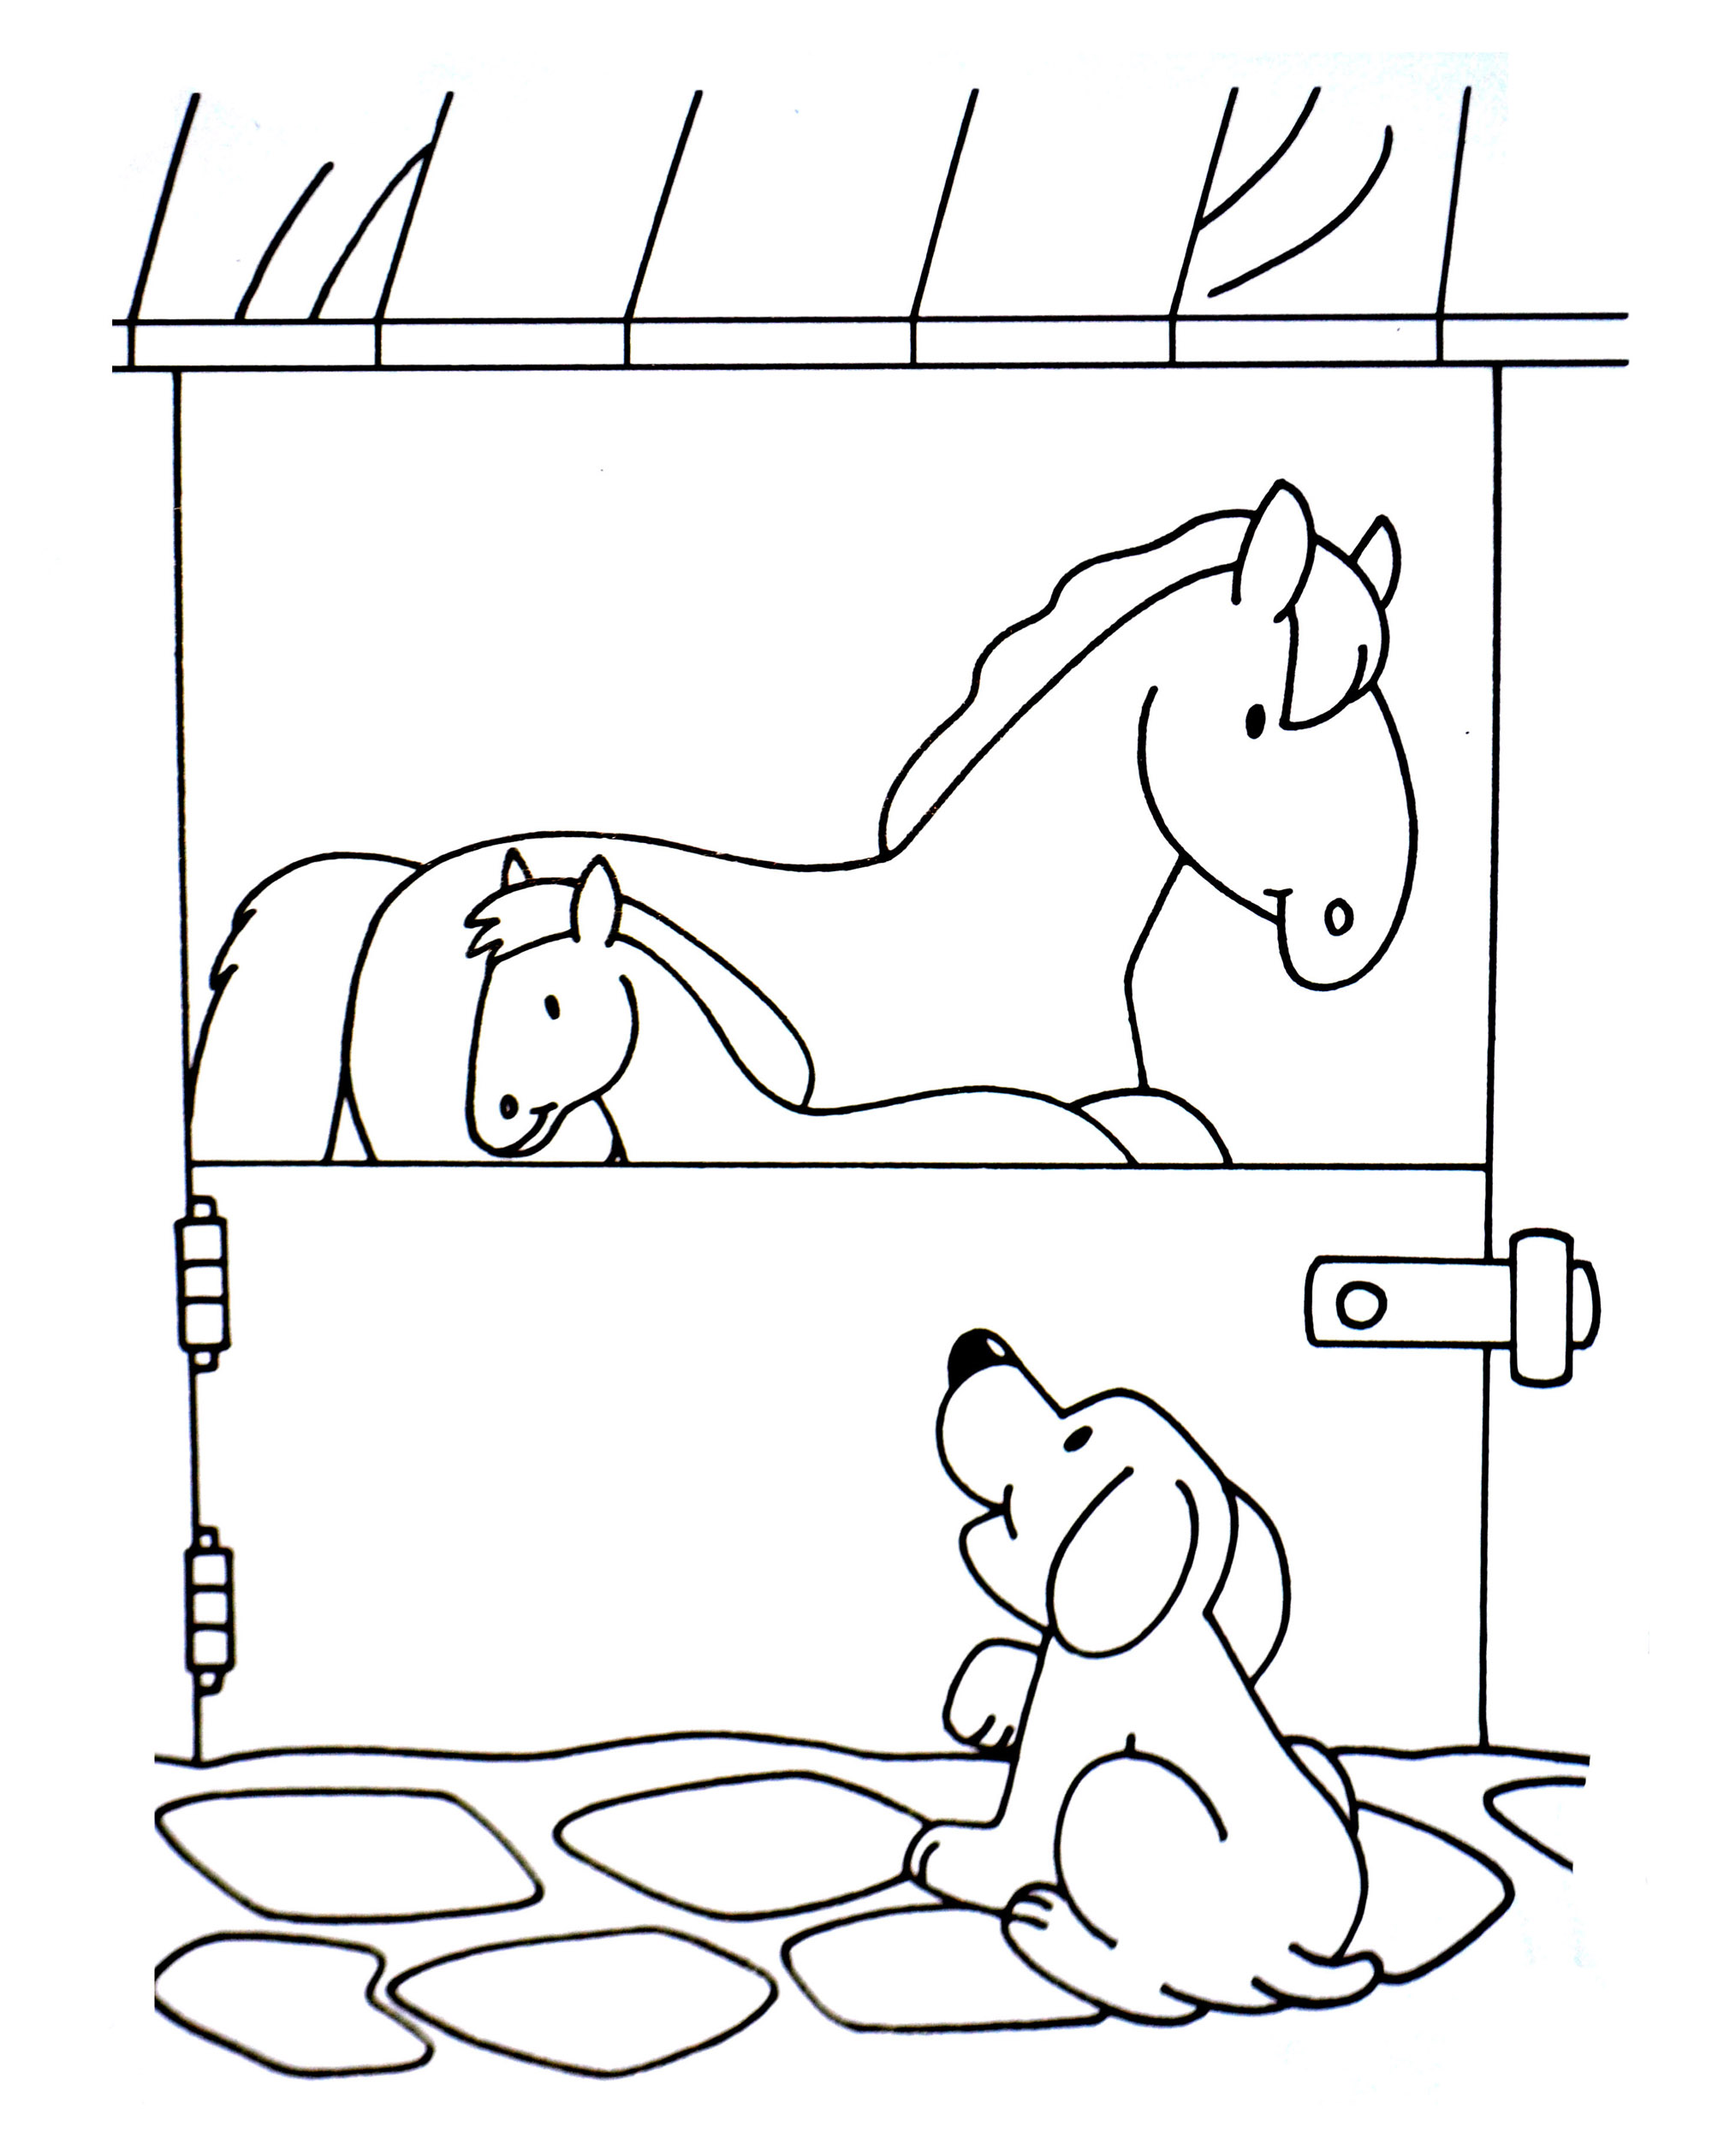 Farm coloring page with few details for kids